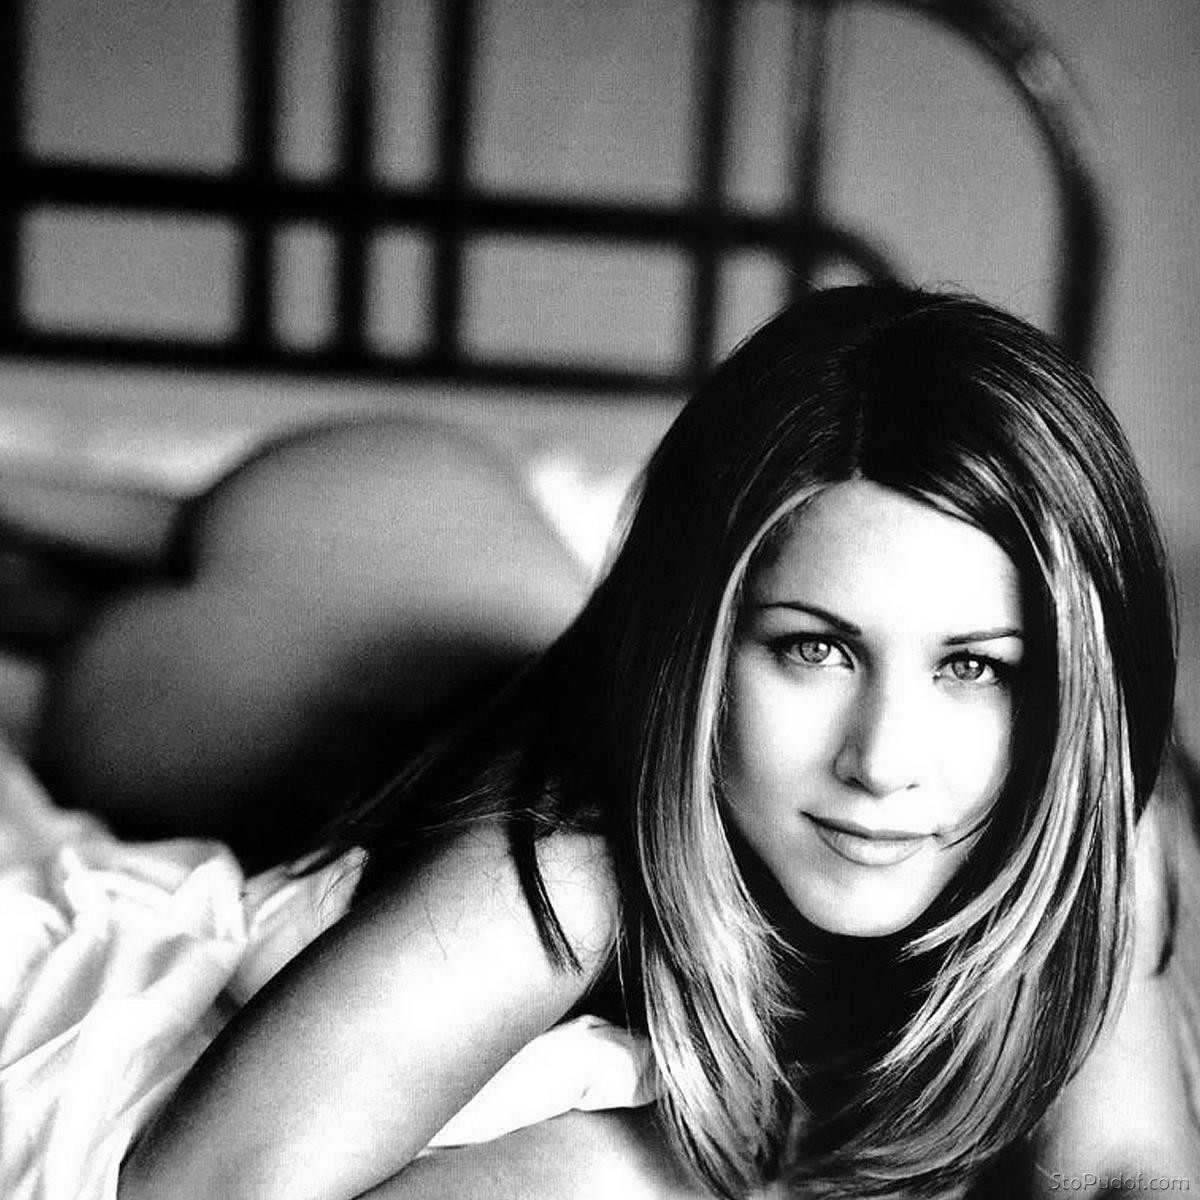 Jennifer Aniston naked pictures online - UkPhotoSafari